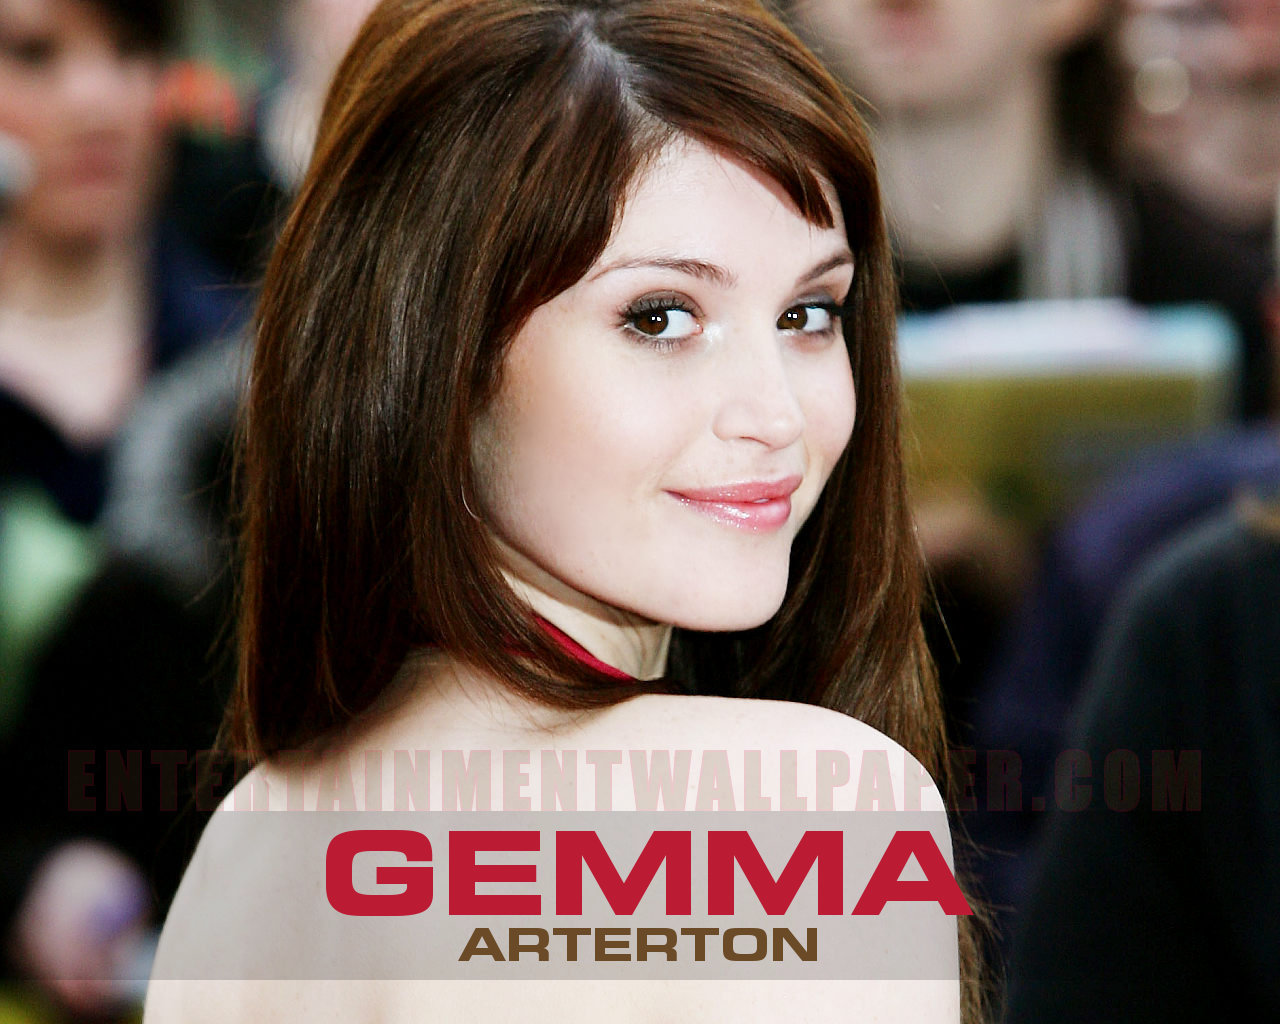 Free Gemma Arterton high quality wallpaper ID:138455 for hd 1280x1024 computer